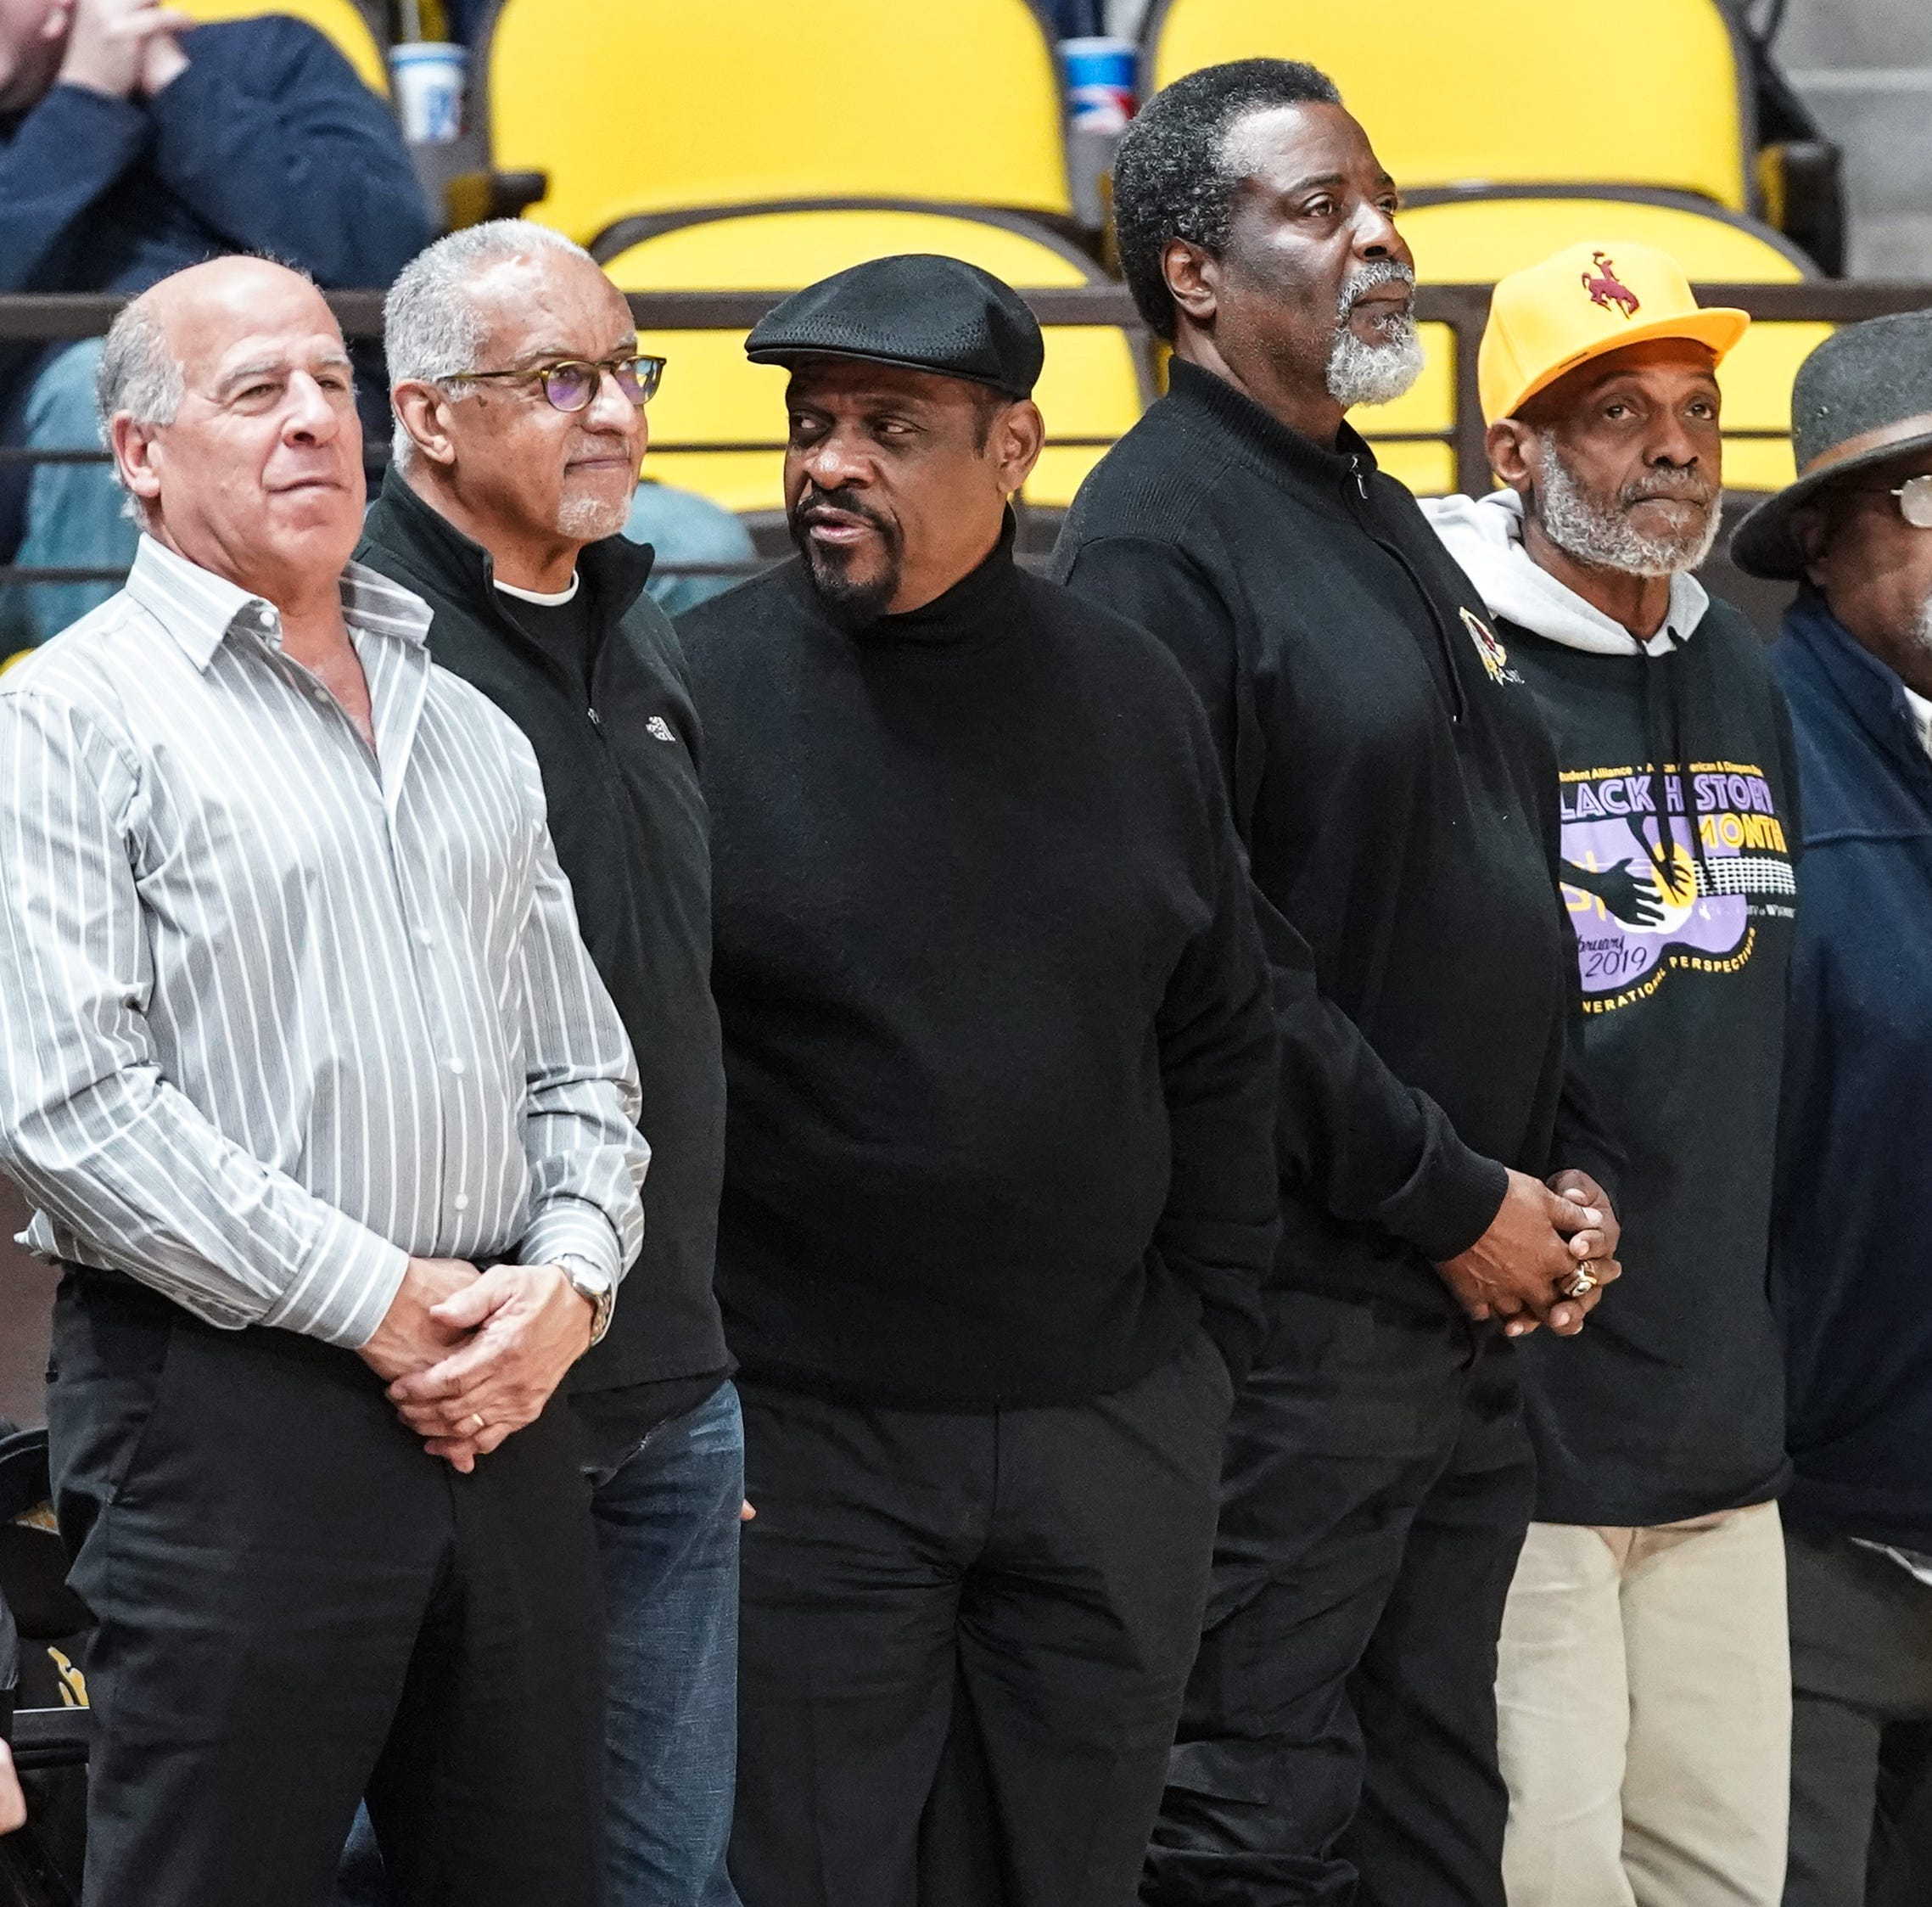 50 years after dismissal from team, Battle Creek's McGee and 'Black 14' return to Wyoming